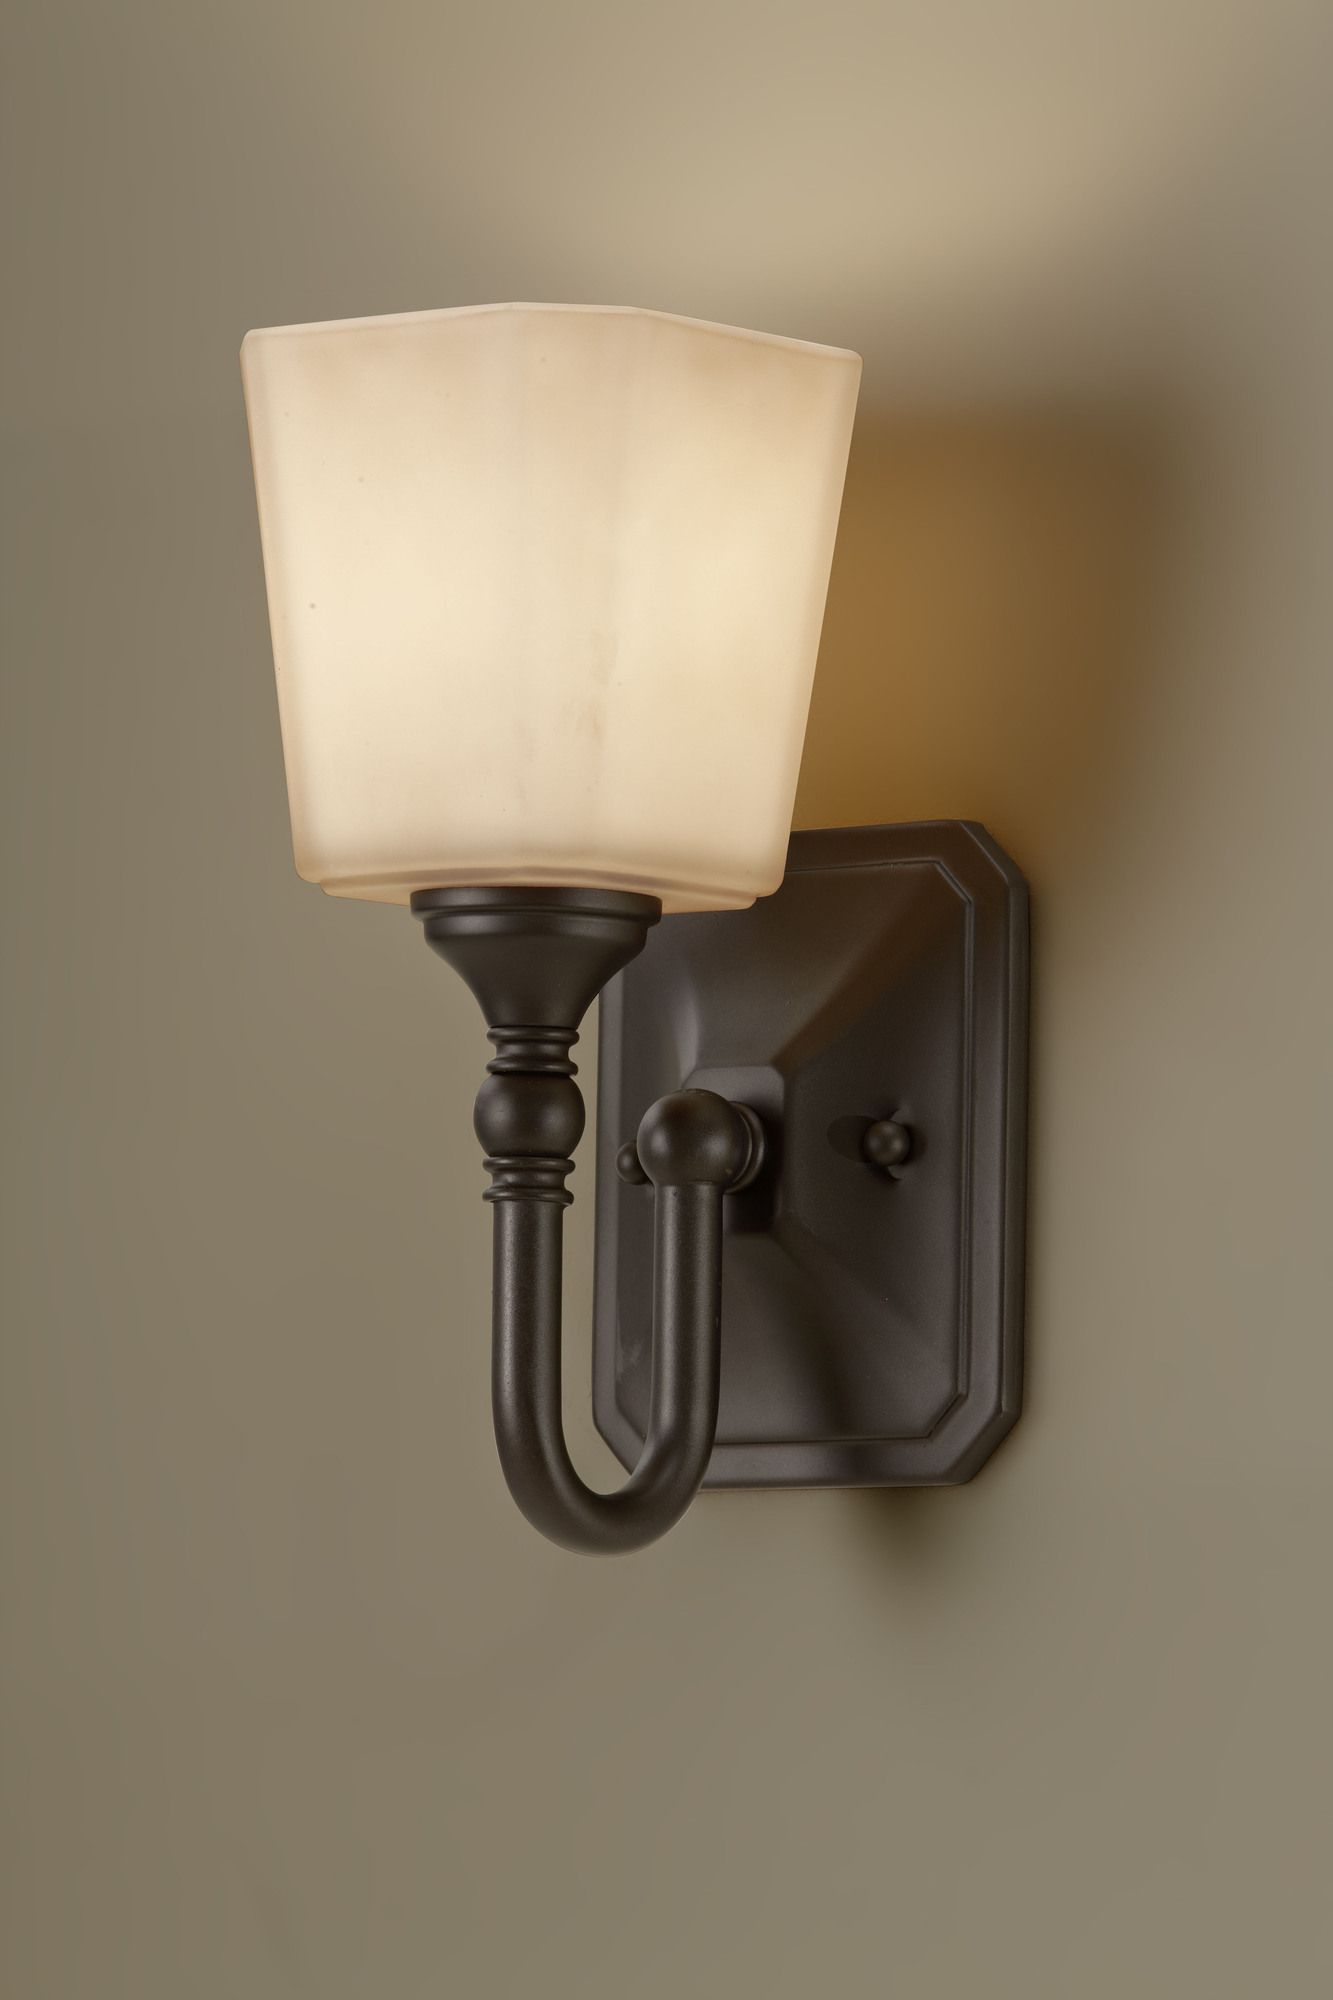 Wall Sconce Option Sconces Bedroom